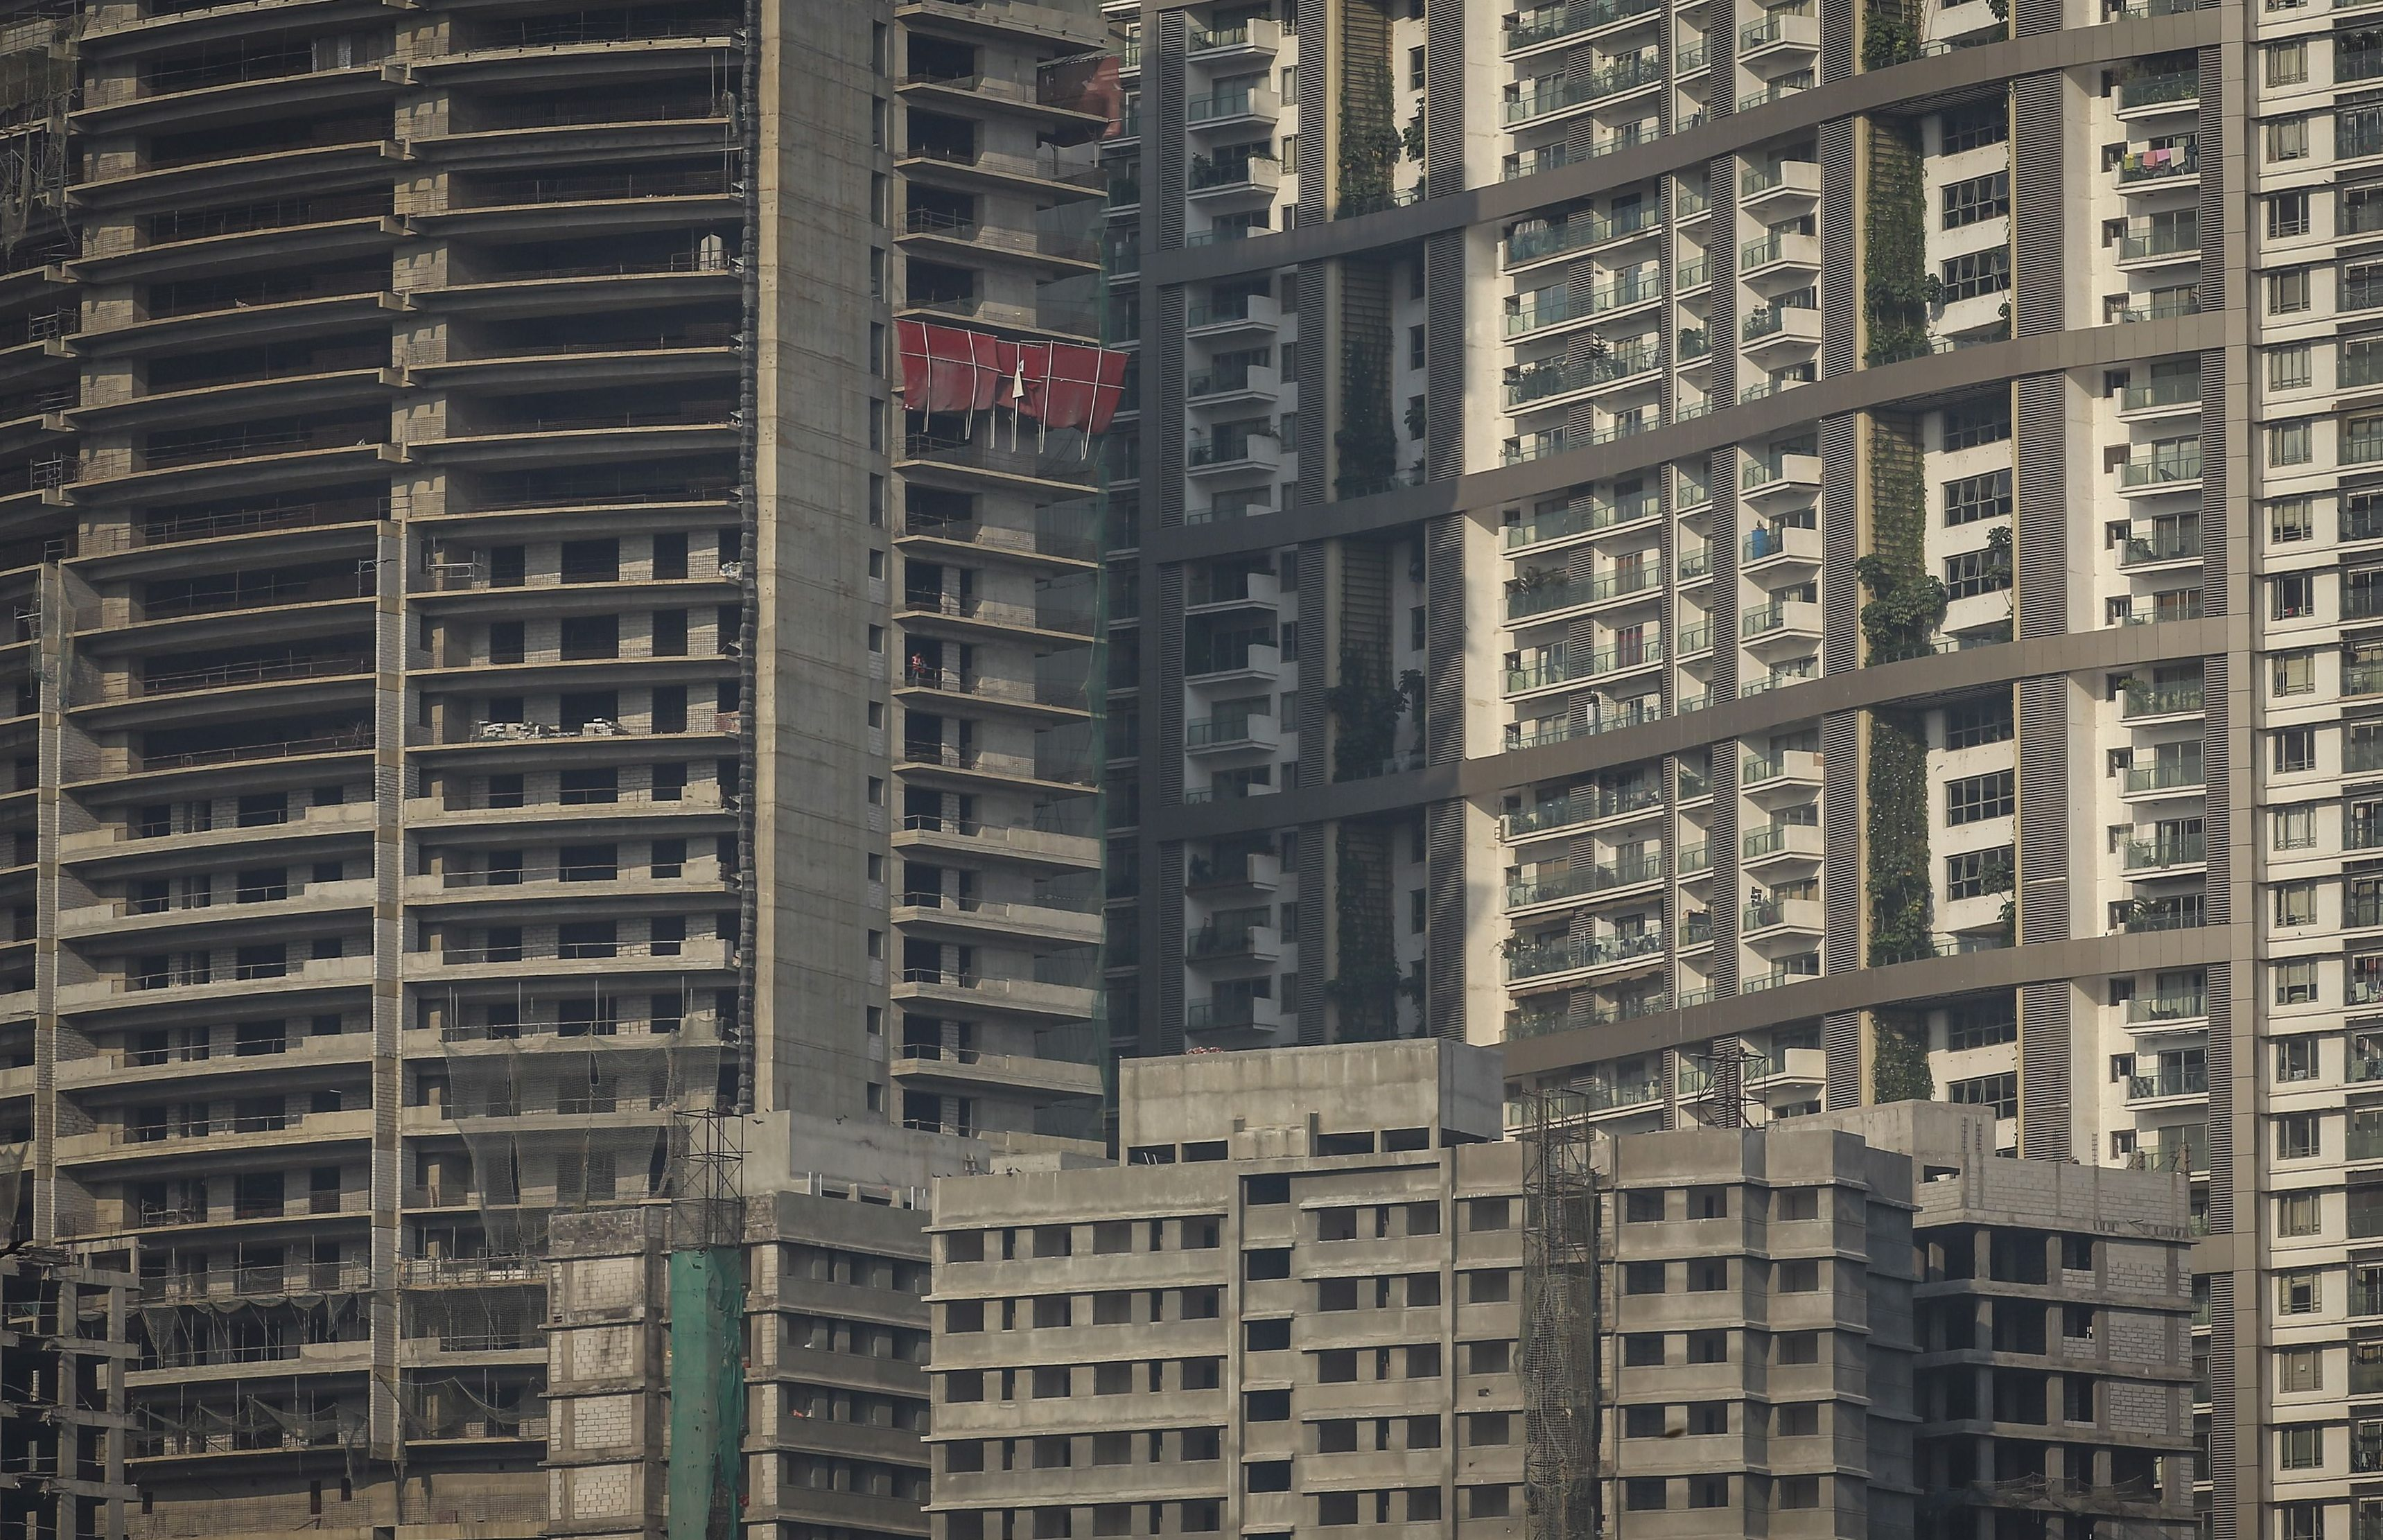 """Windows of high-rise residential buildings which are under construction are seen surrounding a residential tower (R) in central Mumbai January 12, 2015. The cost for buying a 2400 square feet (223 square meters) three-bedroom apartment in the completed residential tower is around 36,400 Indian rupees ($ 580) per square feet or 87,360,000 Indian rupees ($1.40 million). The rent for an apartment in the same building is around 150,000 Indian rupees ($ 2,400) per month. REUTERS/Danish Siddiqui  PICTURE 19 OF 22 FOR WIDER IMAGE STORY """"RENTING IN MUMBAI PER SQUARE FOOT""""?SEARCH """"RENTING SIDDIQUI"""" FOR ALL IMAGES? - GF10000068475"""